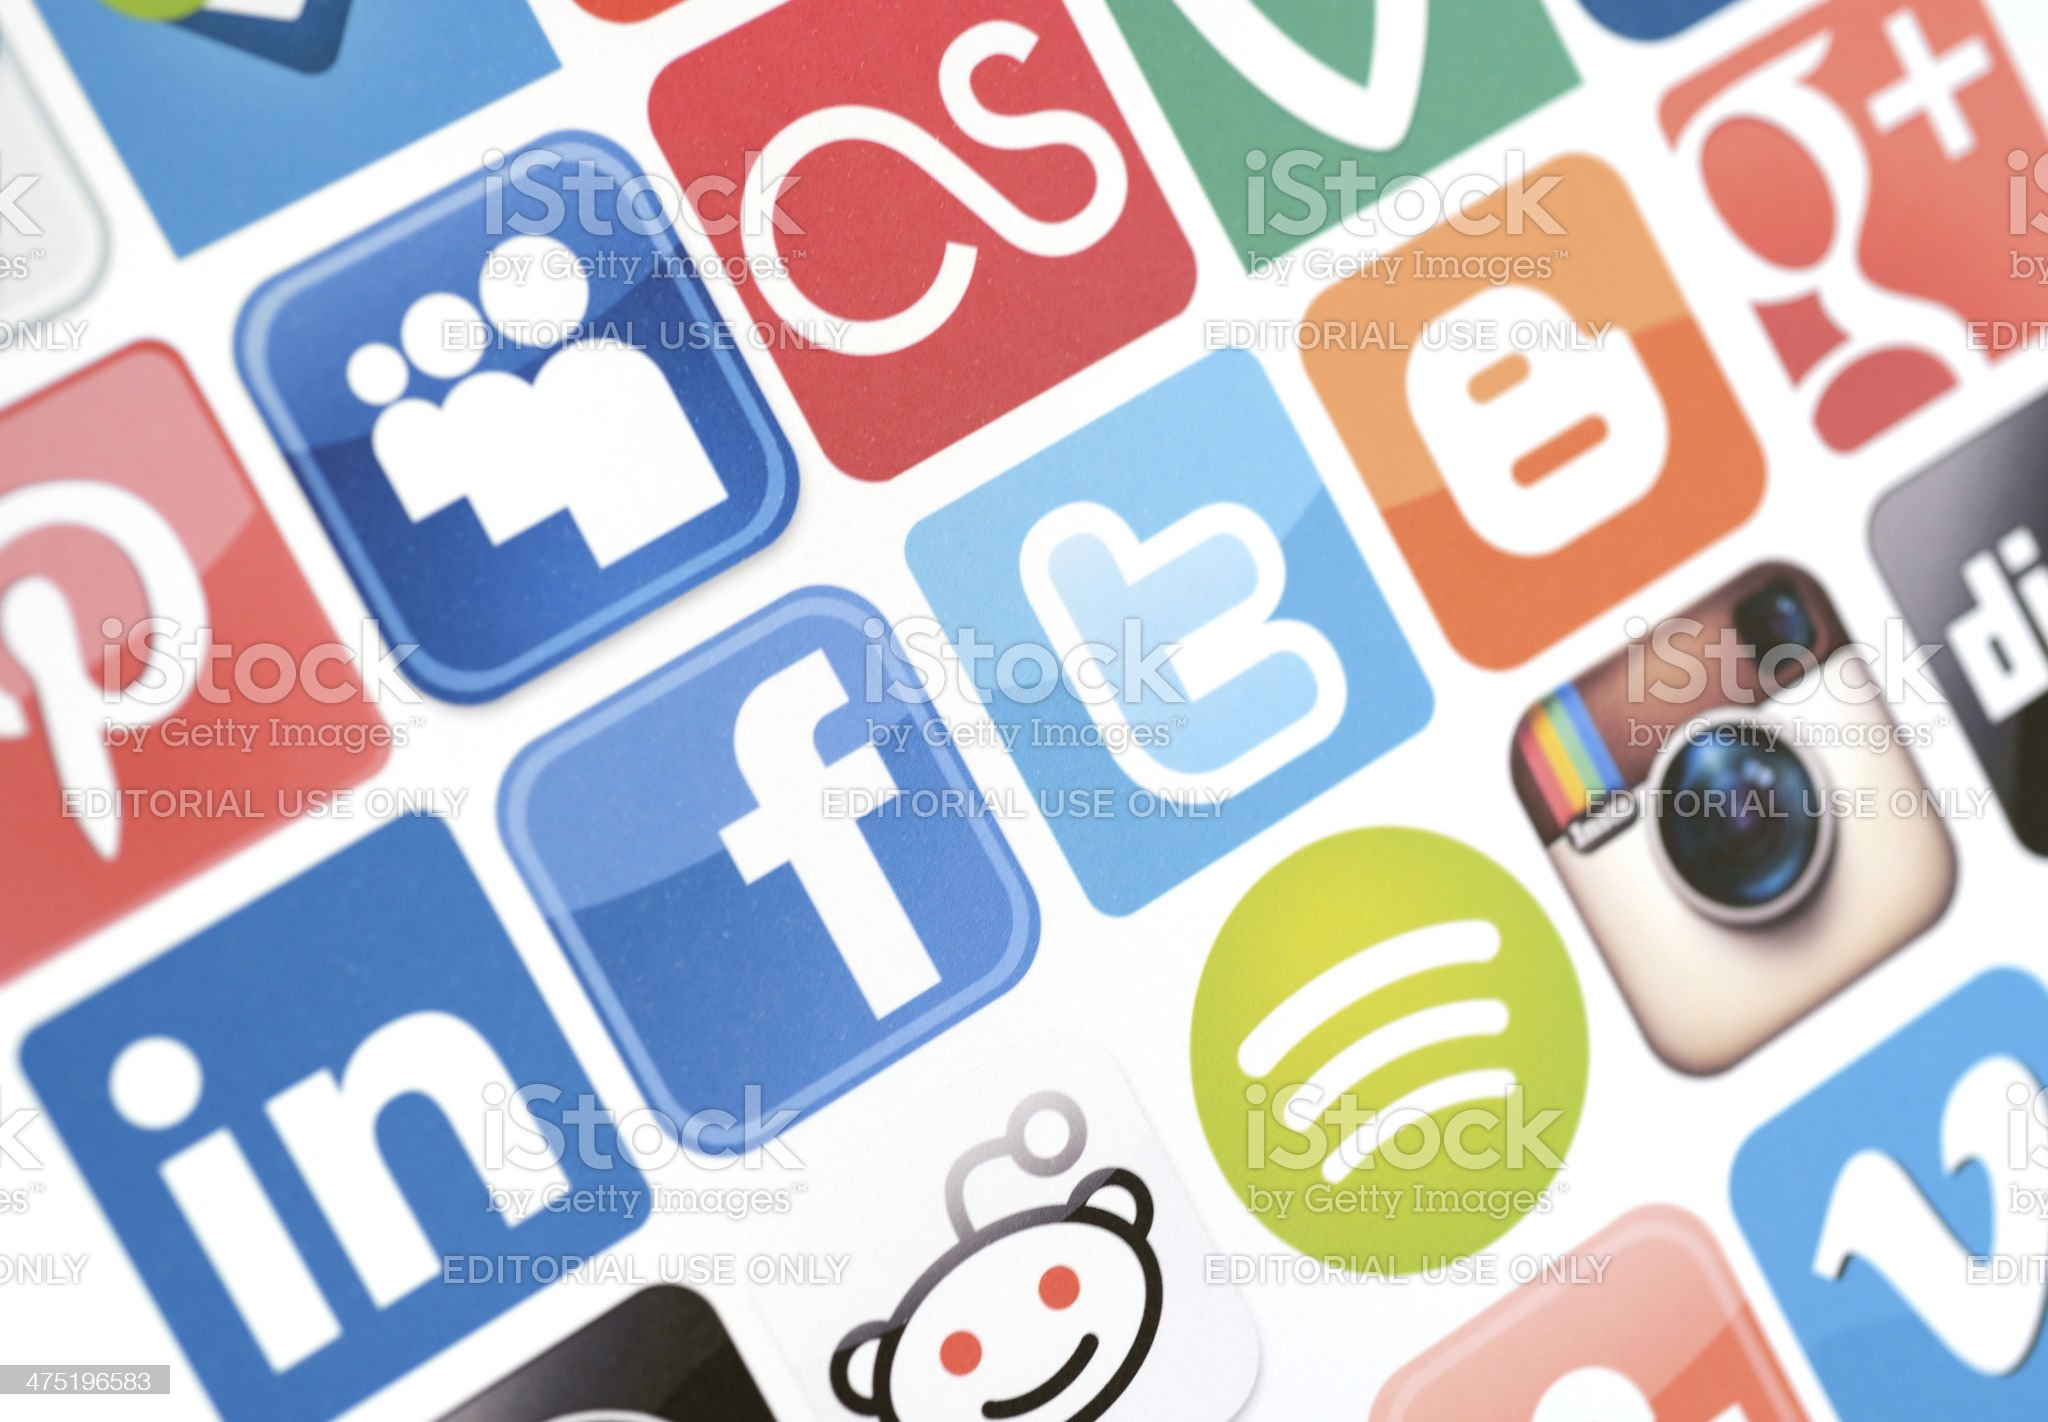 Social Media services icons royalty-free stock photo